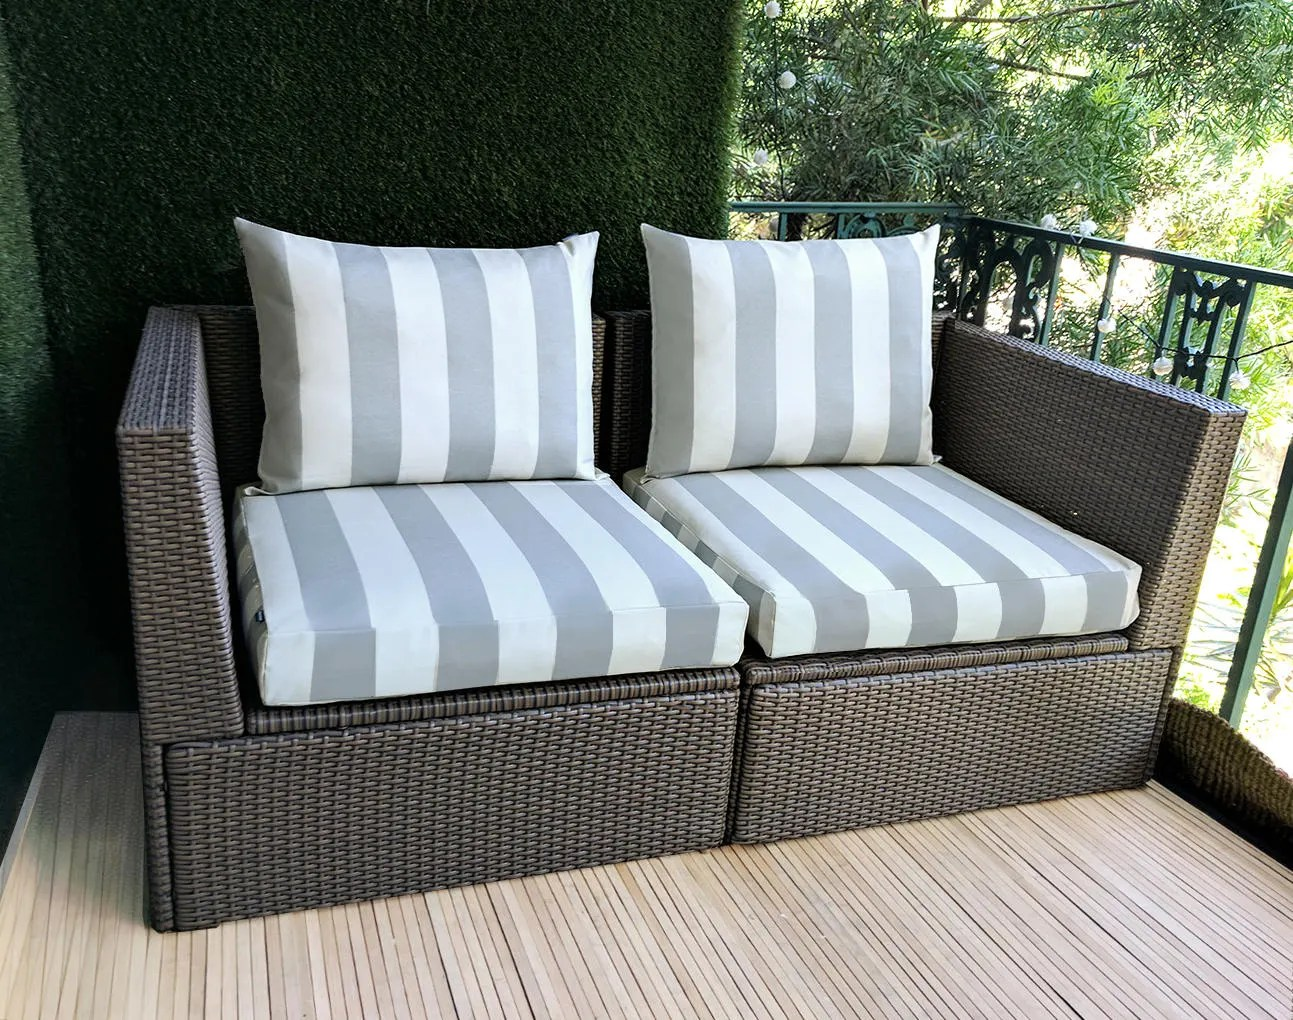 Outdoor Covers Ikea Outdoor Slip Cover Ikea Kungso Cushion Covers Custom Kungso Ikea Decor Bespoke Arholma Covers Gray Canopy Stripe